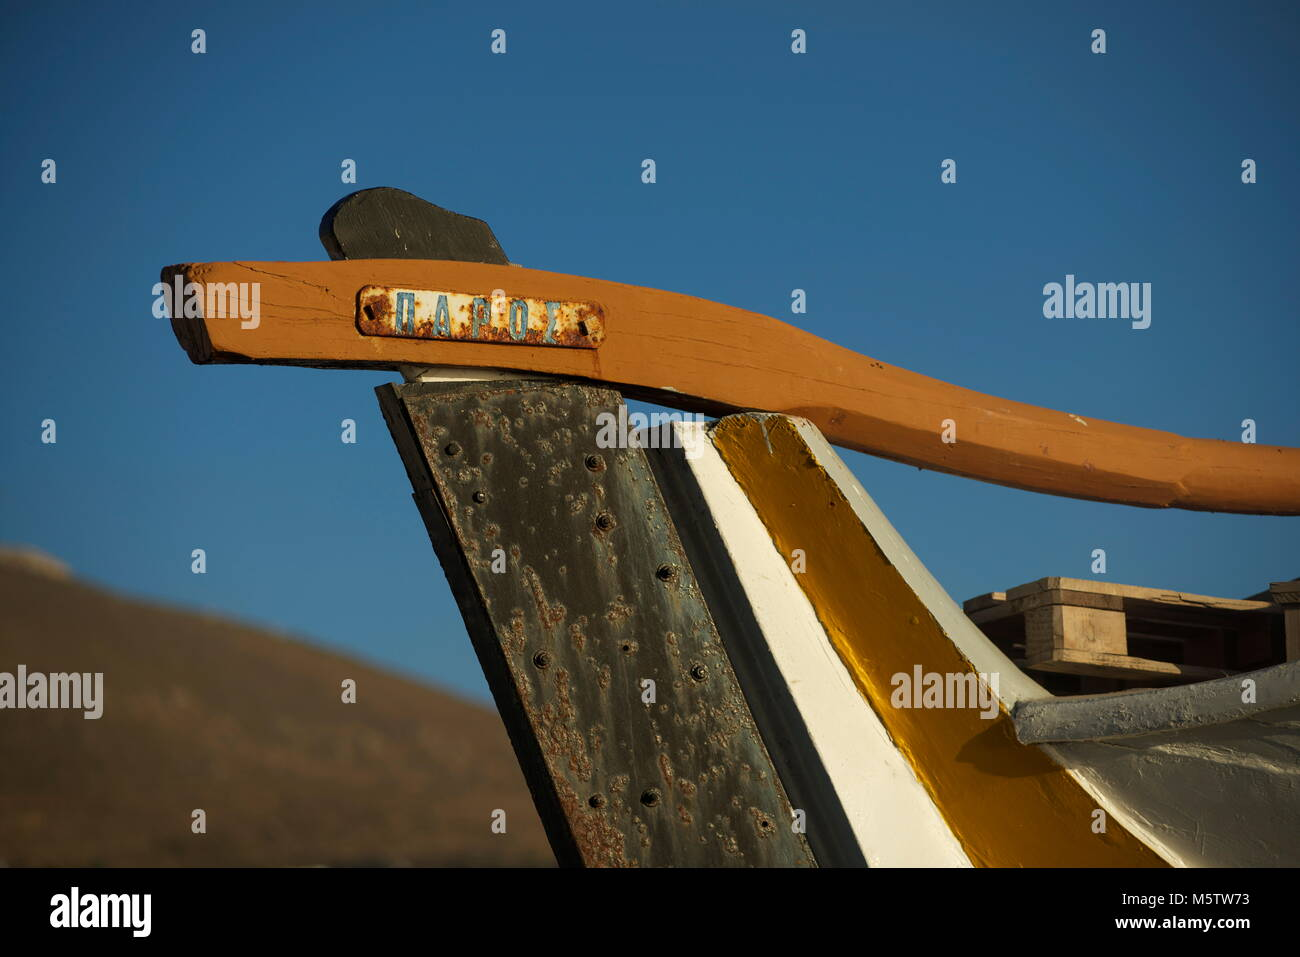 Wooden Tiller Stock Photos & Wooden Tiller Stock Images - Alamy